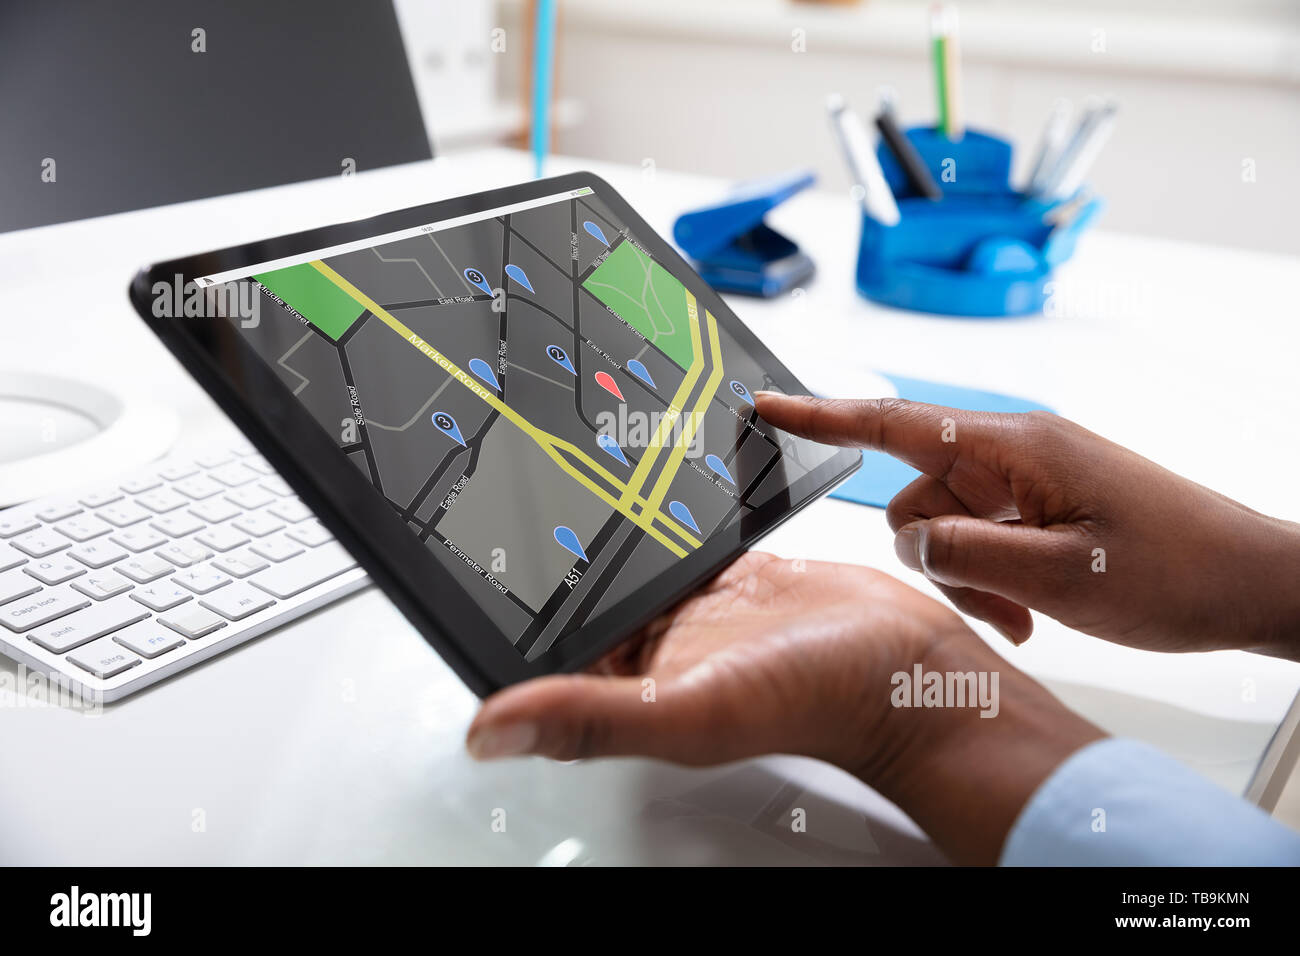 Close-up Of A Woman's Hand Using GPS Navigation Map On Digital Tablet Over The Desk - Stock Image